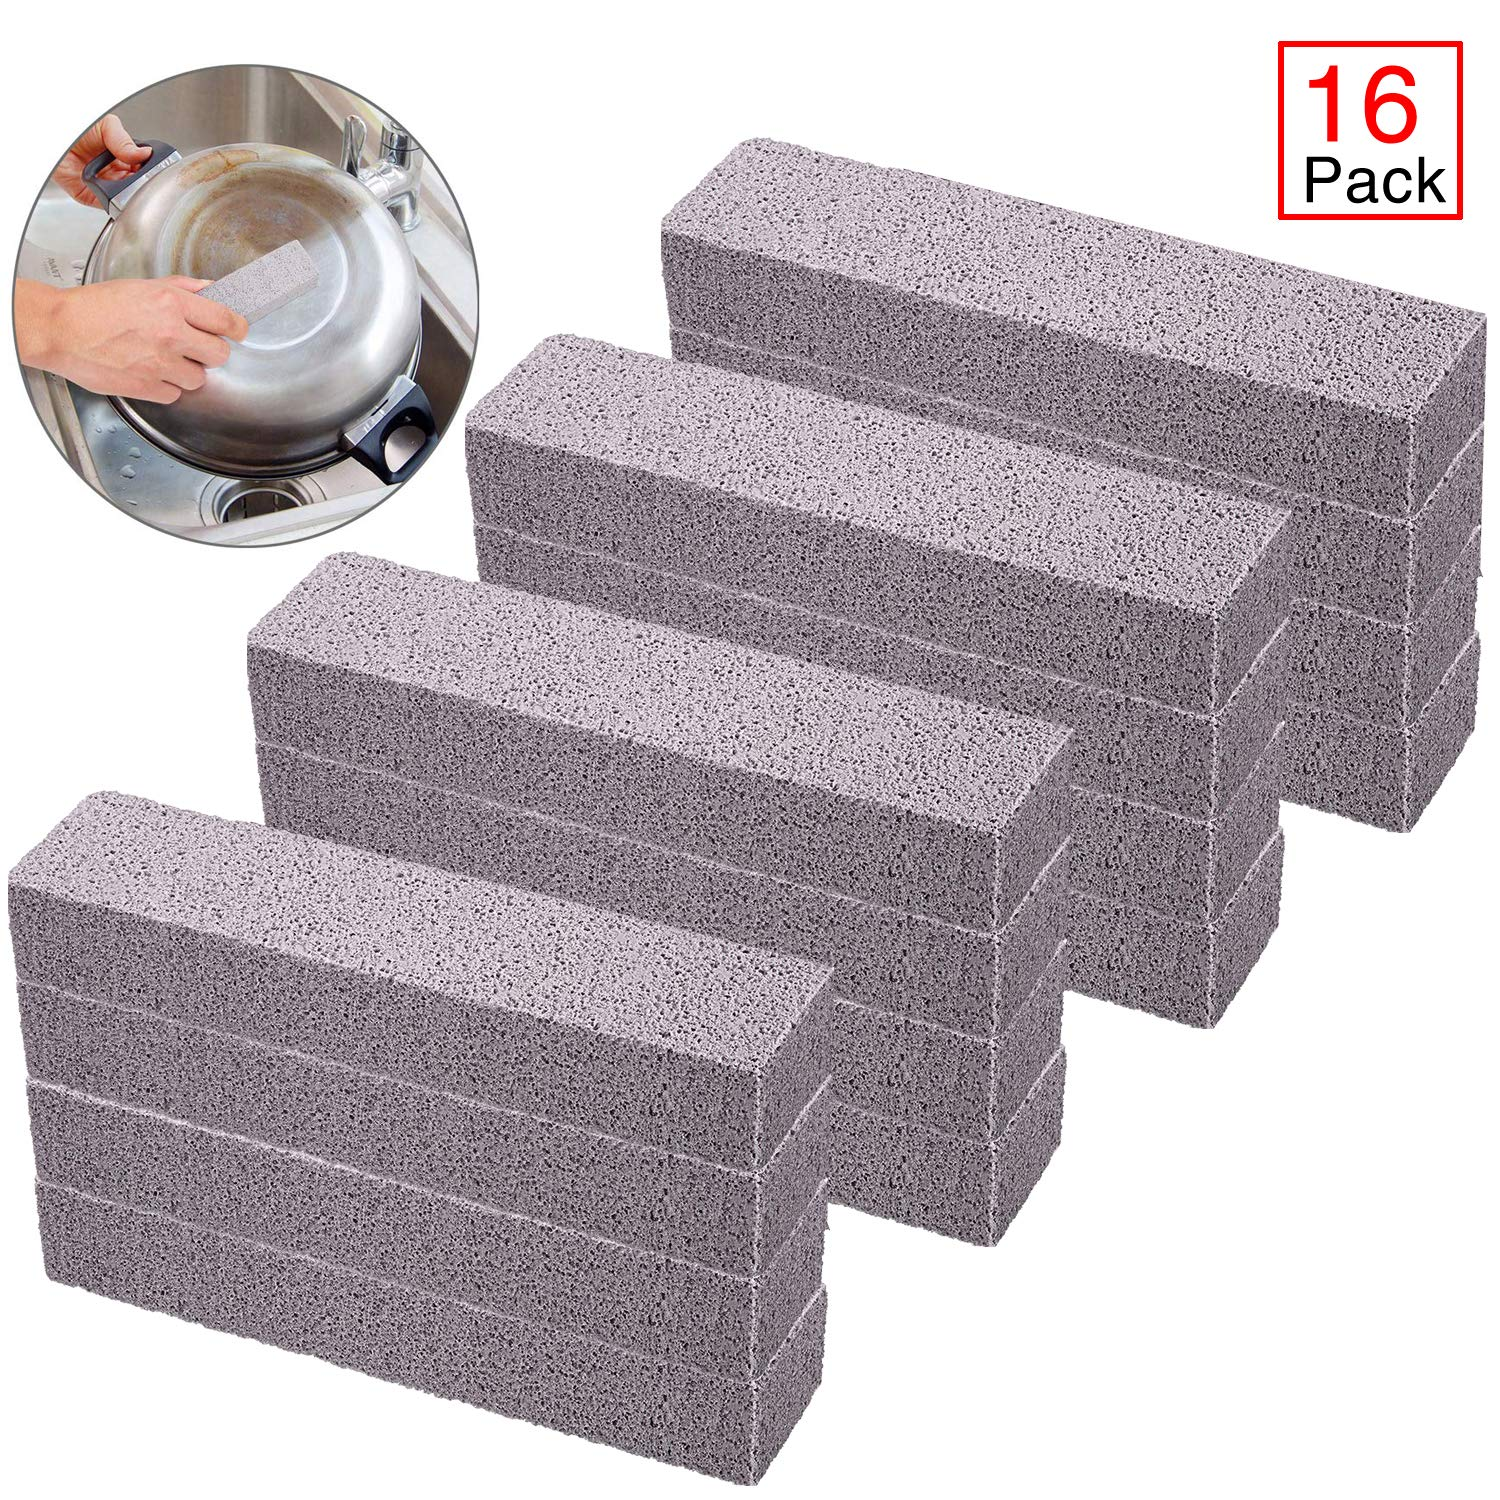 Onene 16 Pieces Pumice Sticks, Pumice Stones for Cleaning, Pumice Scouring Pad, Scouring Bars, Toilet Bowl Ring Remover, for Kitchen, Bath, Pool, Spa, Household Cleaning